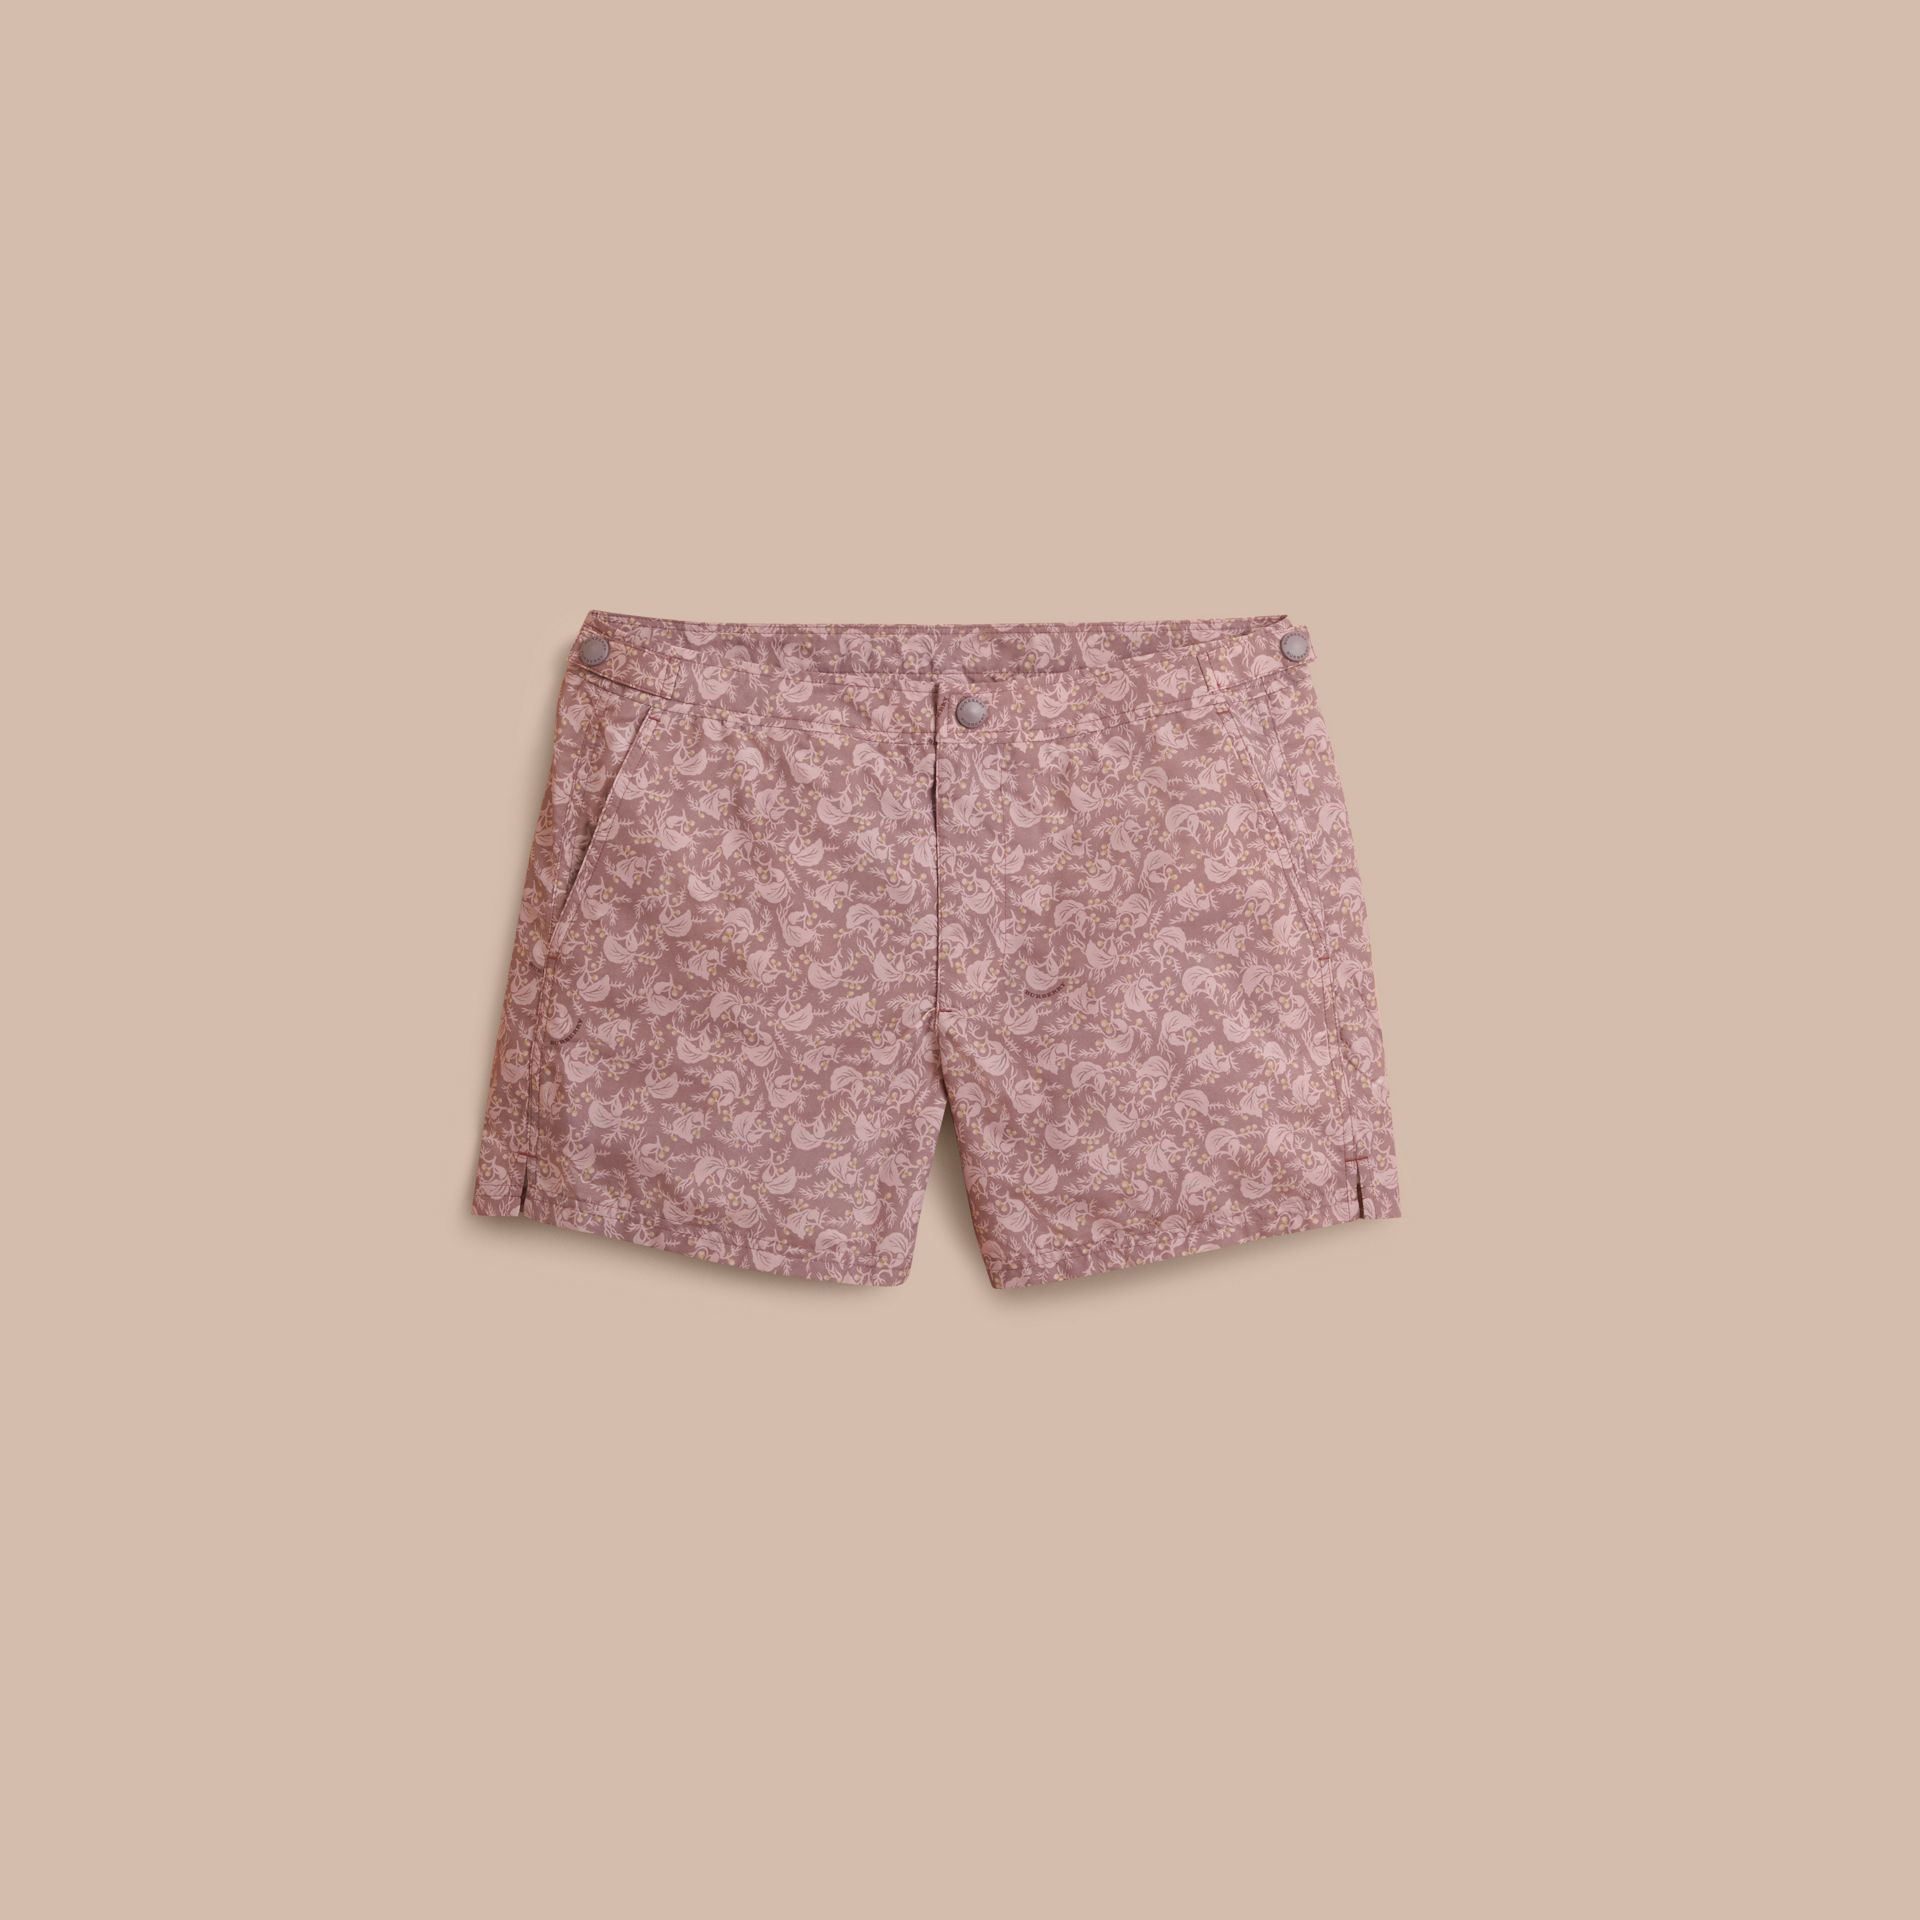 Leaf Print Swim Shorts in Mauve - Men | Burberry - gallery image 1